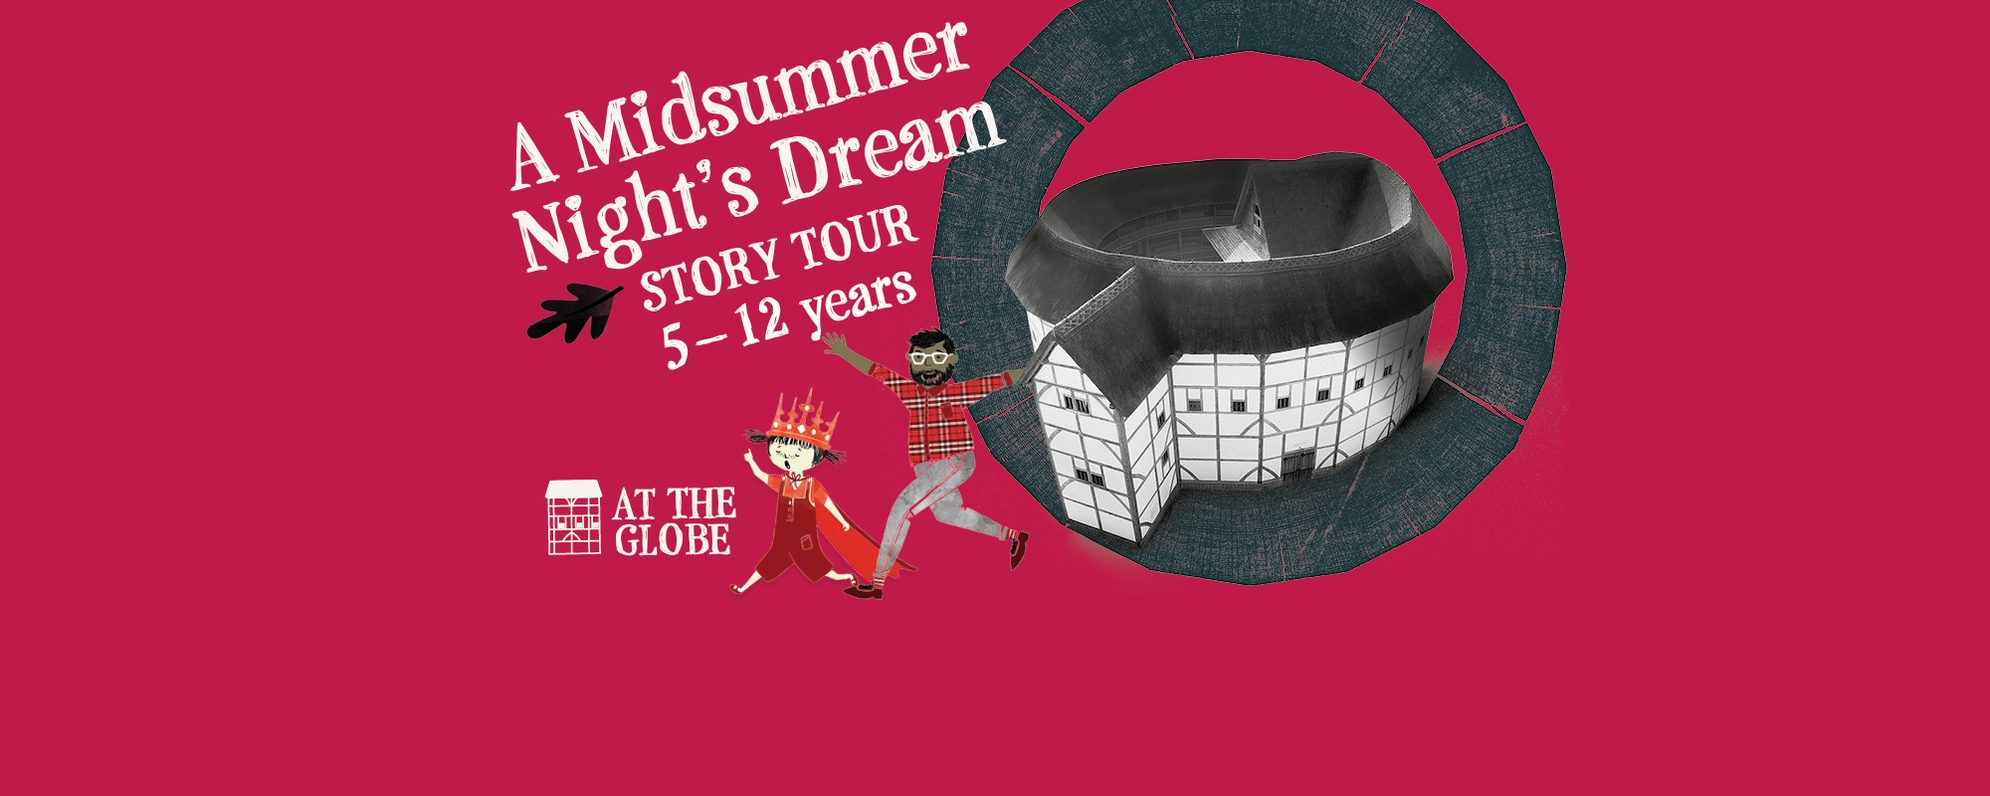 Text: A Midsummer Night's Dream Story Tour 5-12 years, Image of the Globe Theatre with running cartoon people